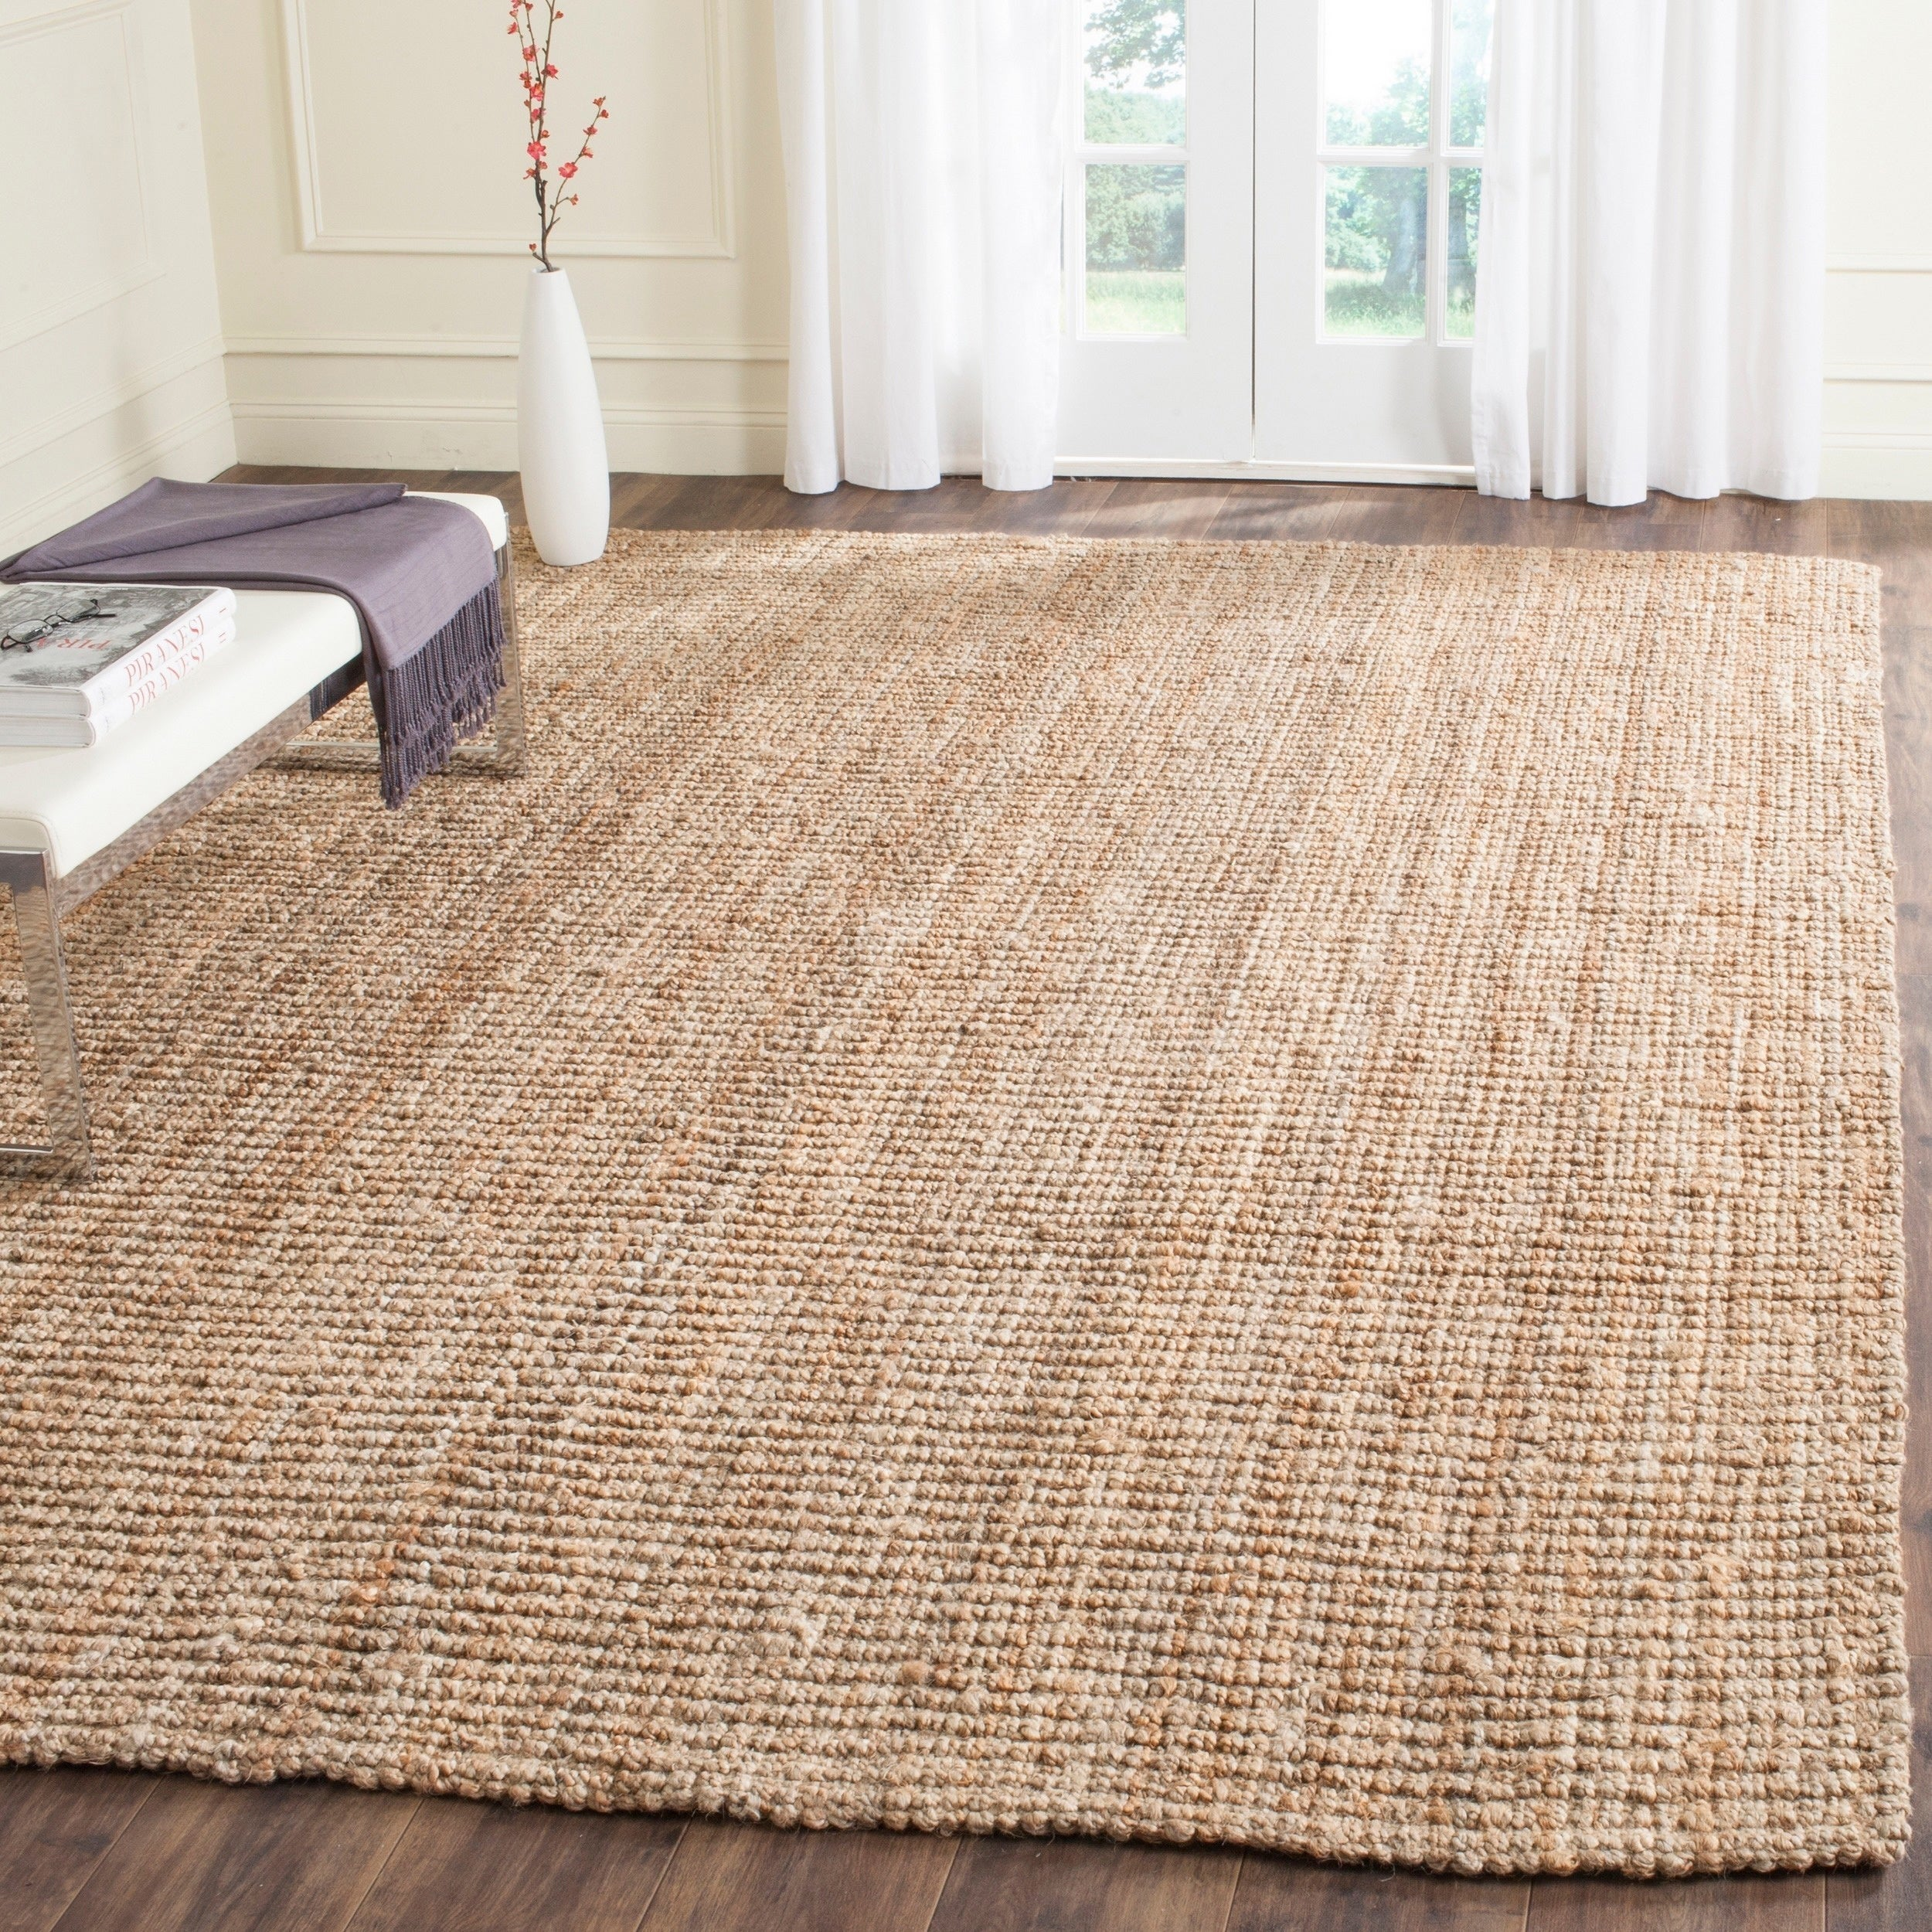 Safavieh Casual Natural Fiber Hand Woven Accents Chunky Thick Jute Rug 7 6 X 9 Free Shipping Today 14034882